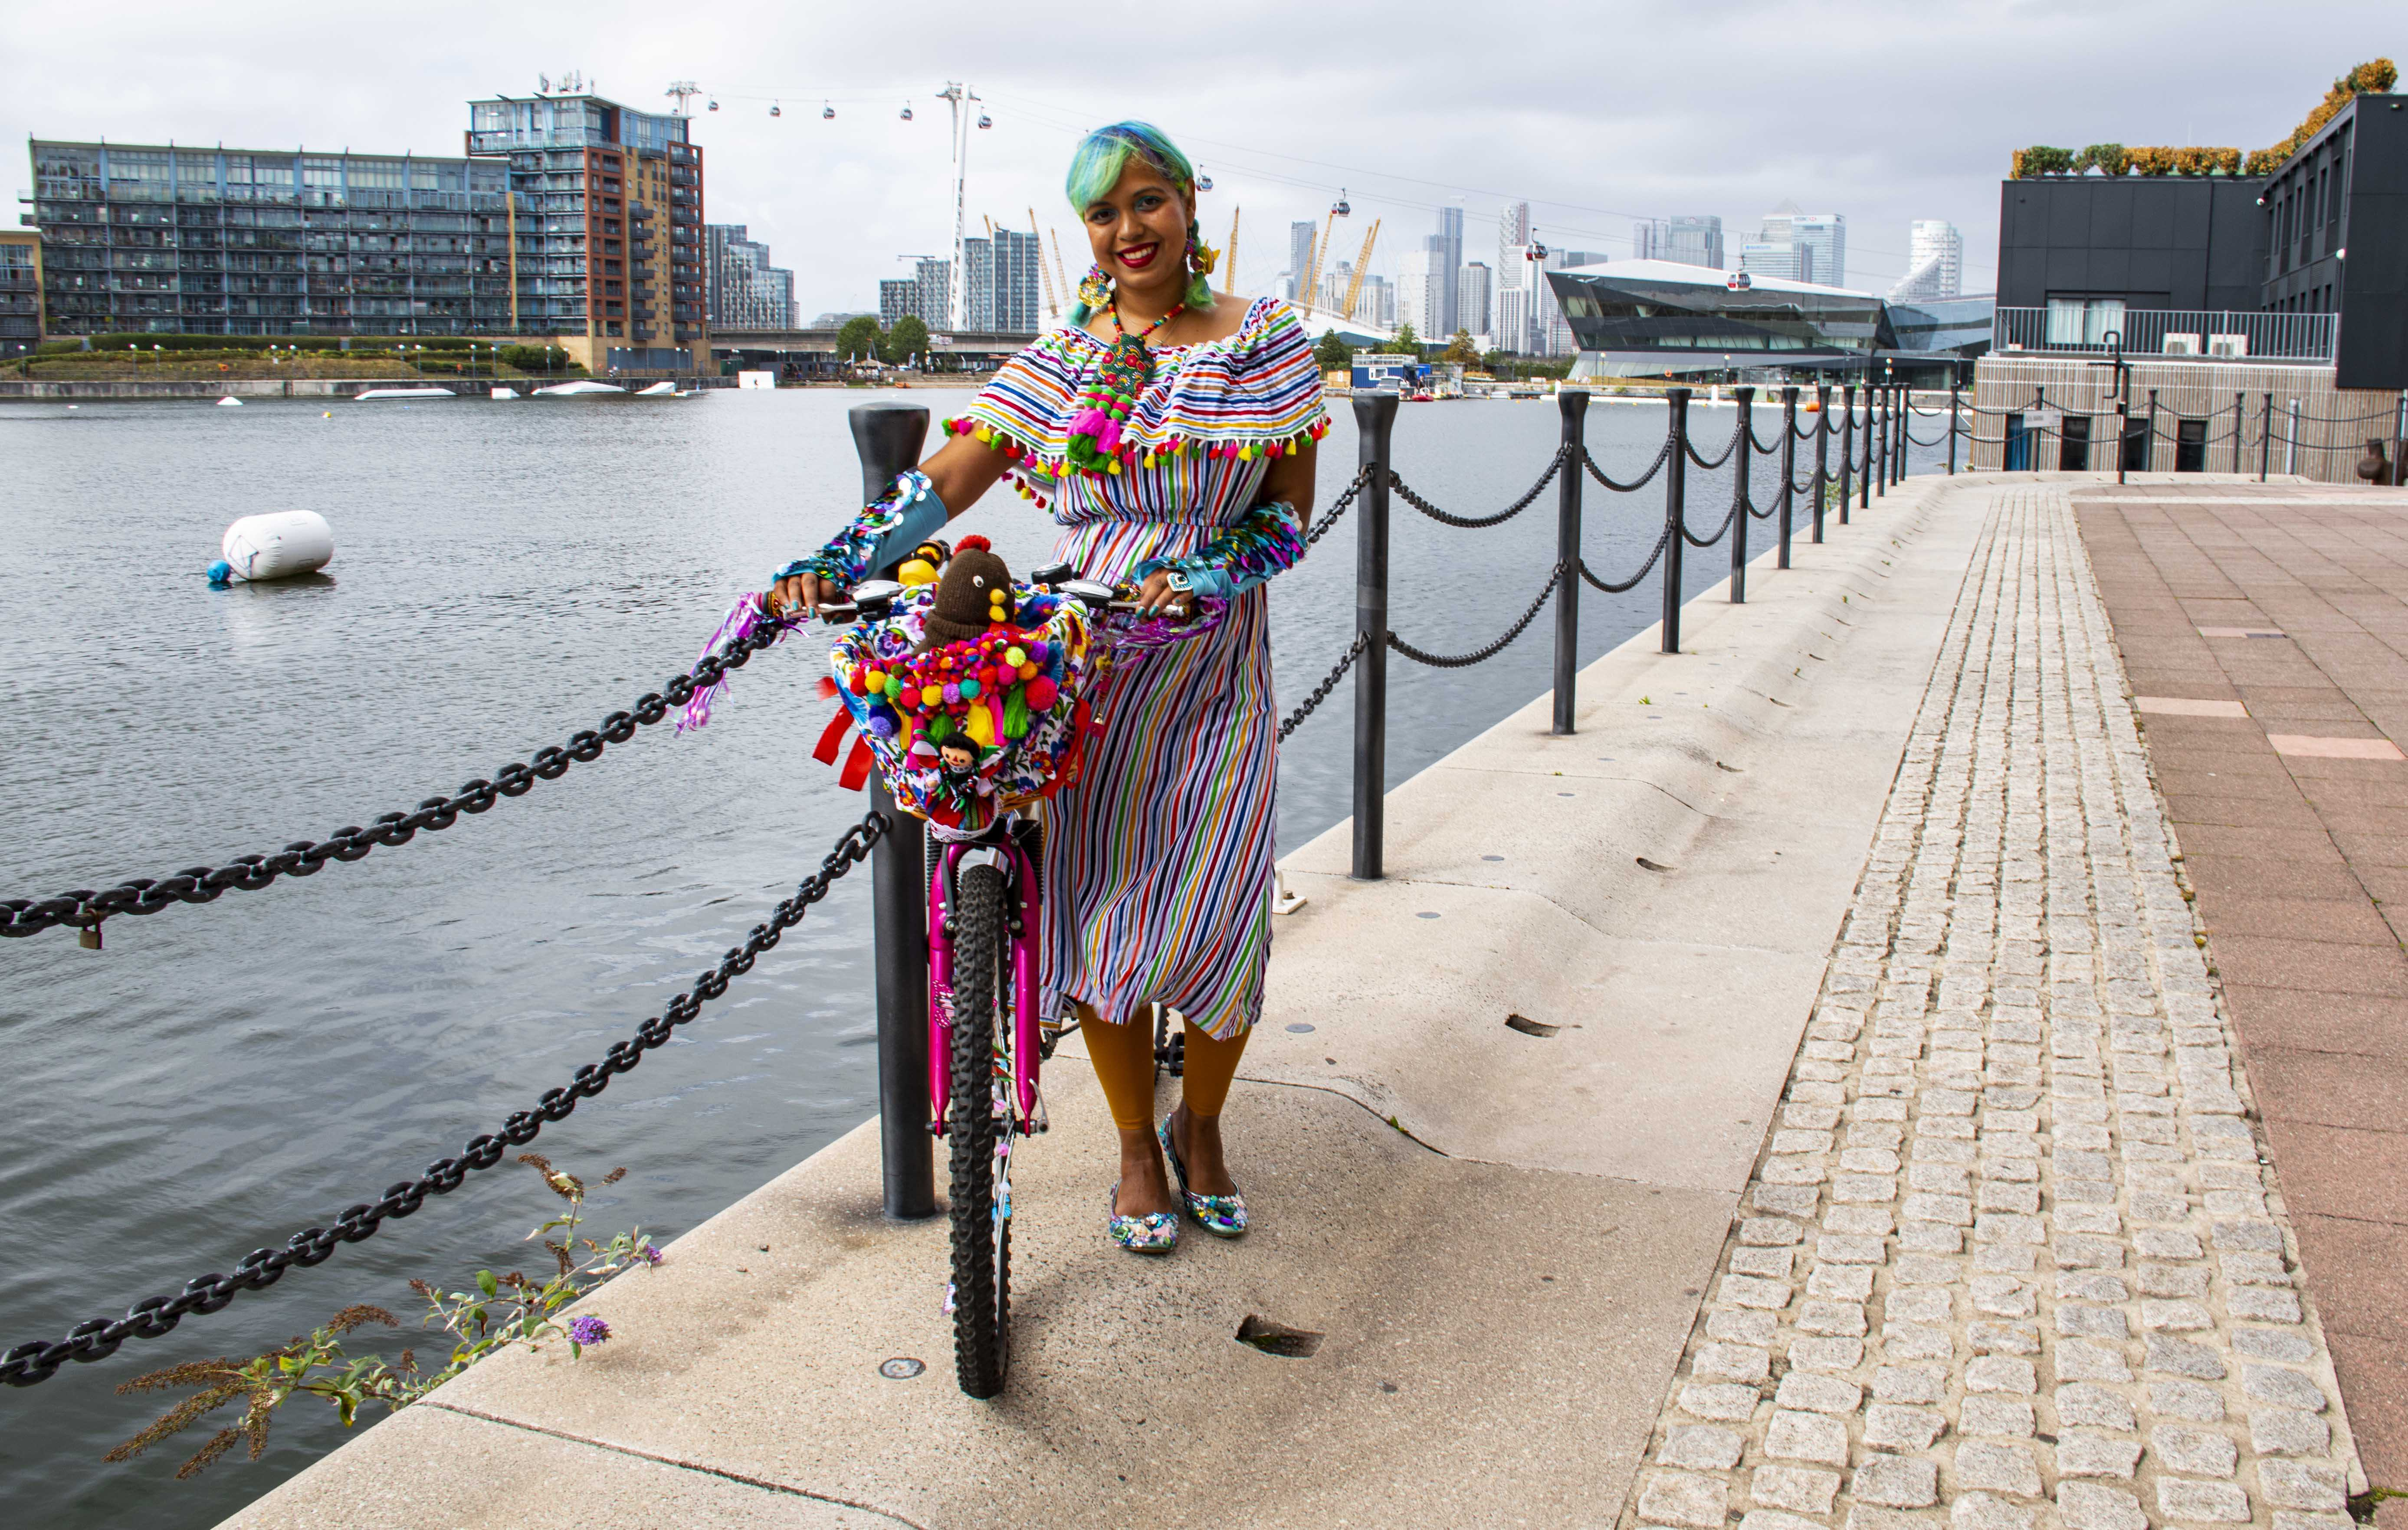 Momtaz with her bike at the Royal Docks